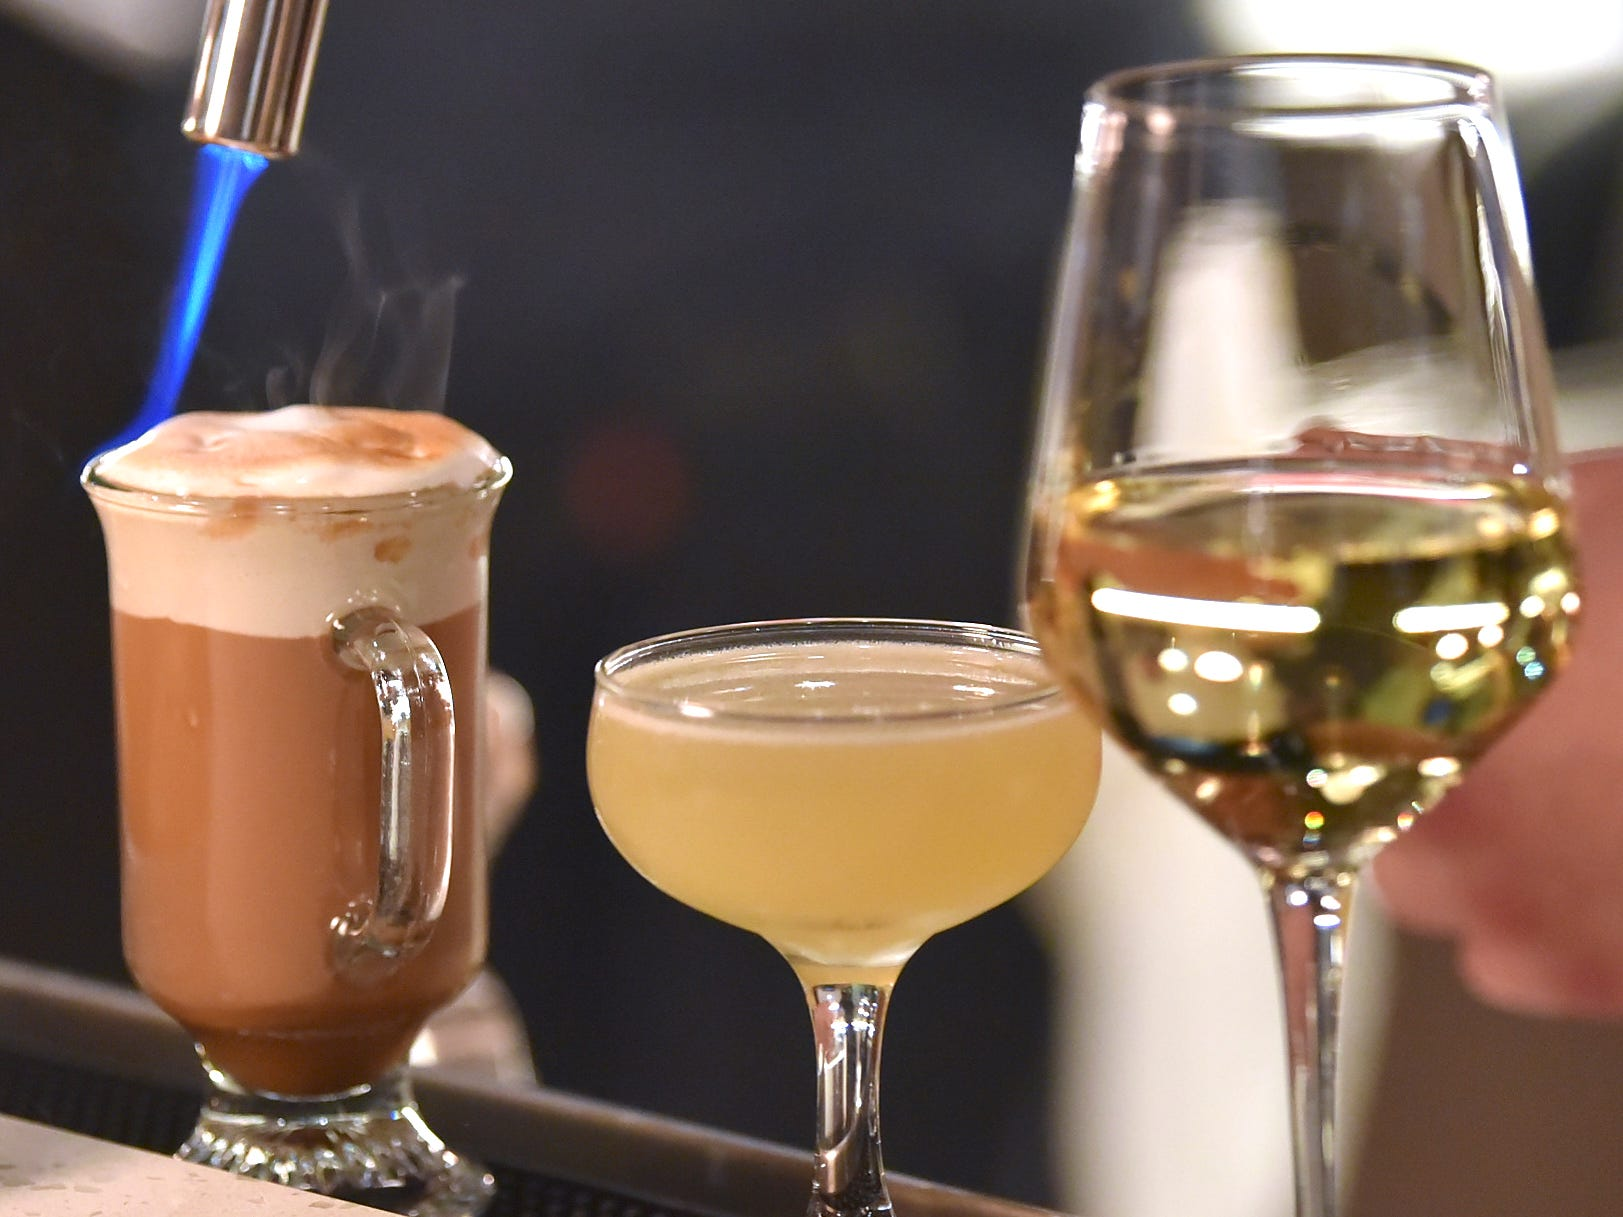 Bartender Jeffrey Urcheck of Hamtramck torches the top of a Fernet Meringue Swiss Holiday drink, left, next to an Evergarden cocktail, center, and a German semi-sweet glass of wine.